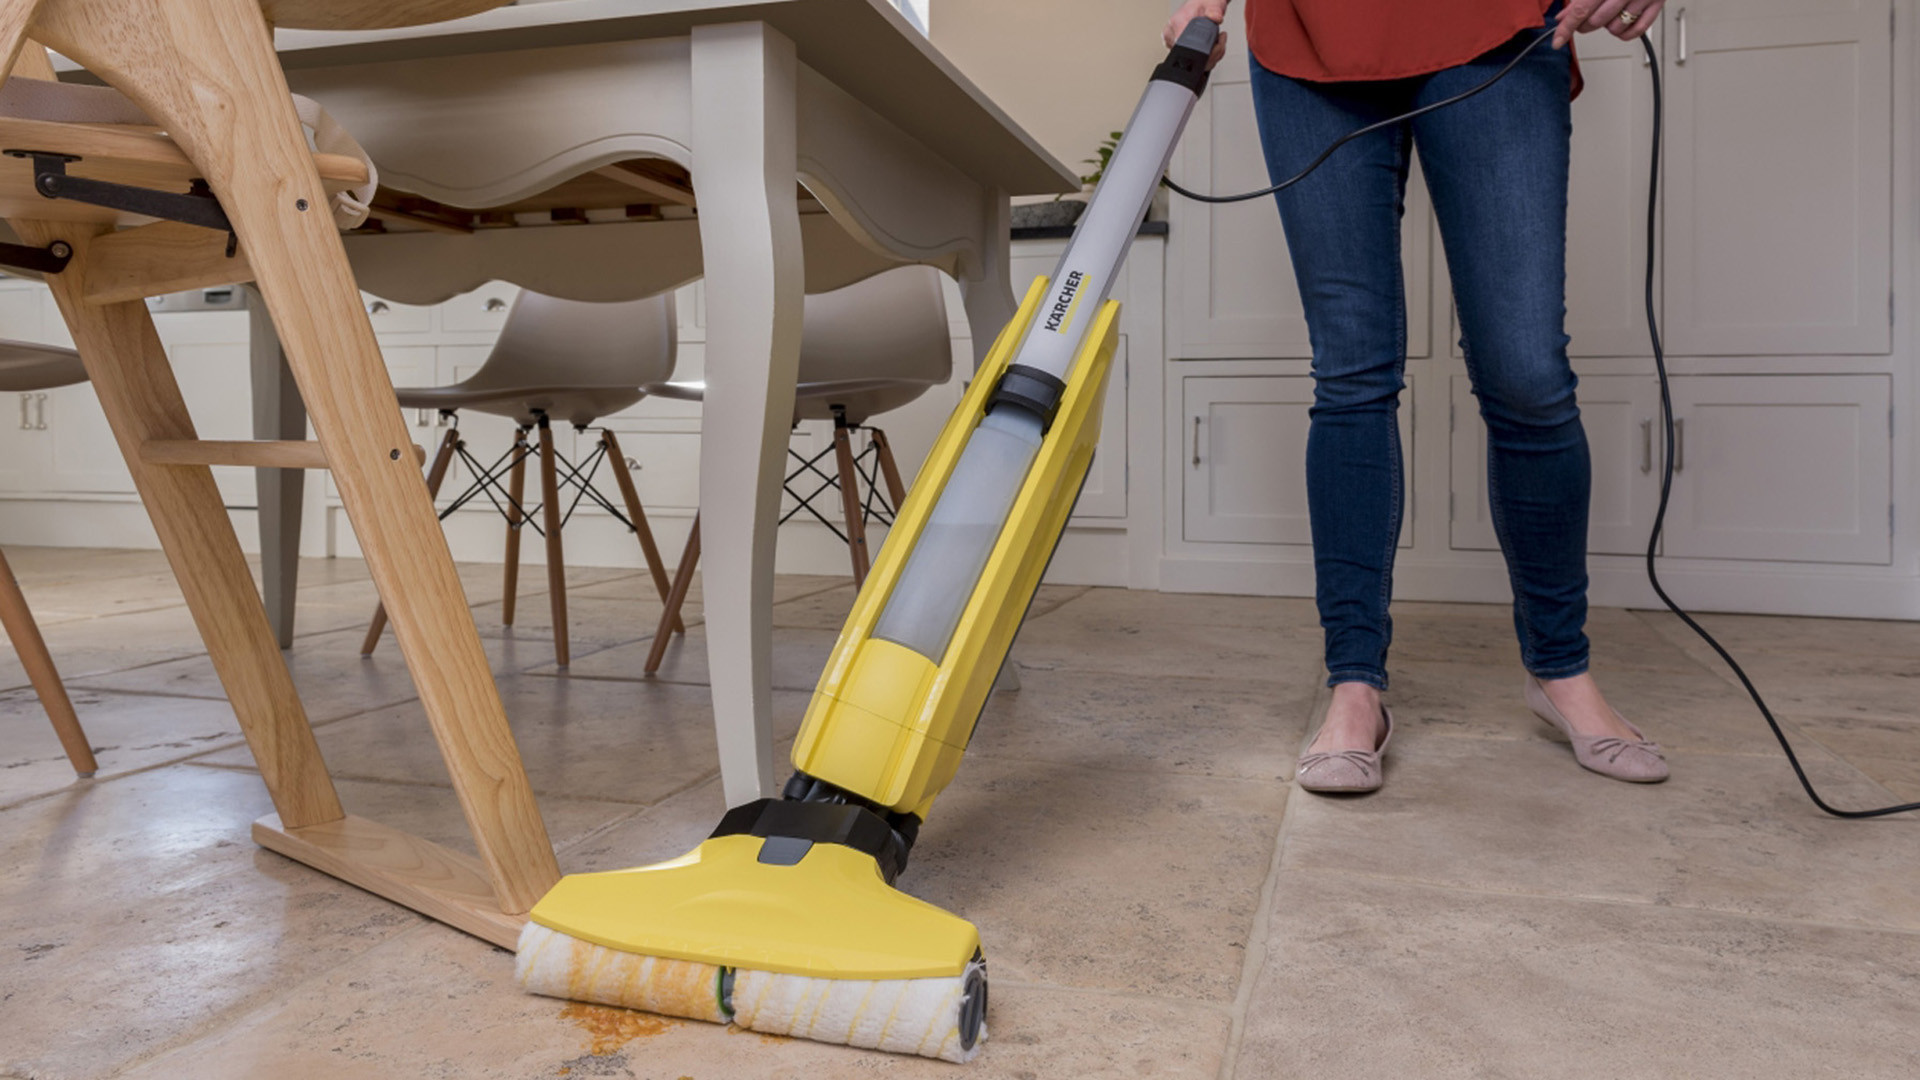 13 attractive Cheap Hardwood Floor Vacuum 2021 free download cheap hardwood floor vacuum of karcher fc5 hard floor cleaner review trusted reviews pertaining to karcher fc5 5 1